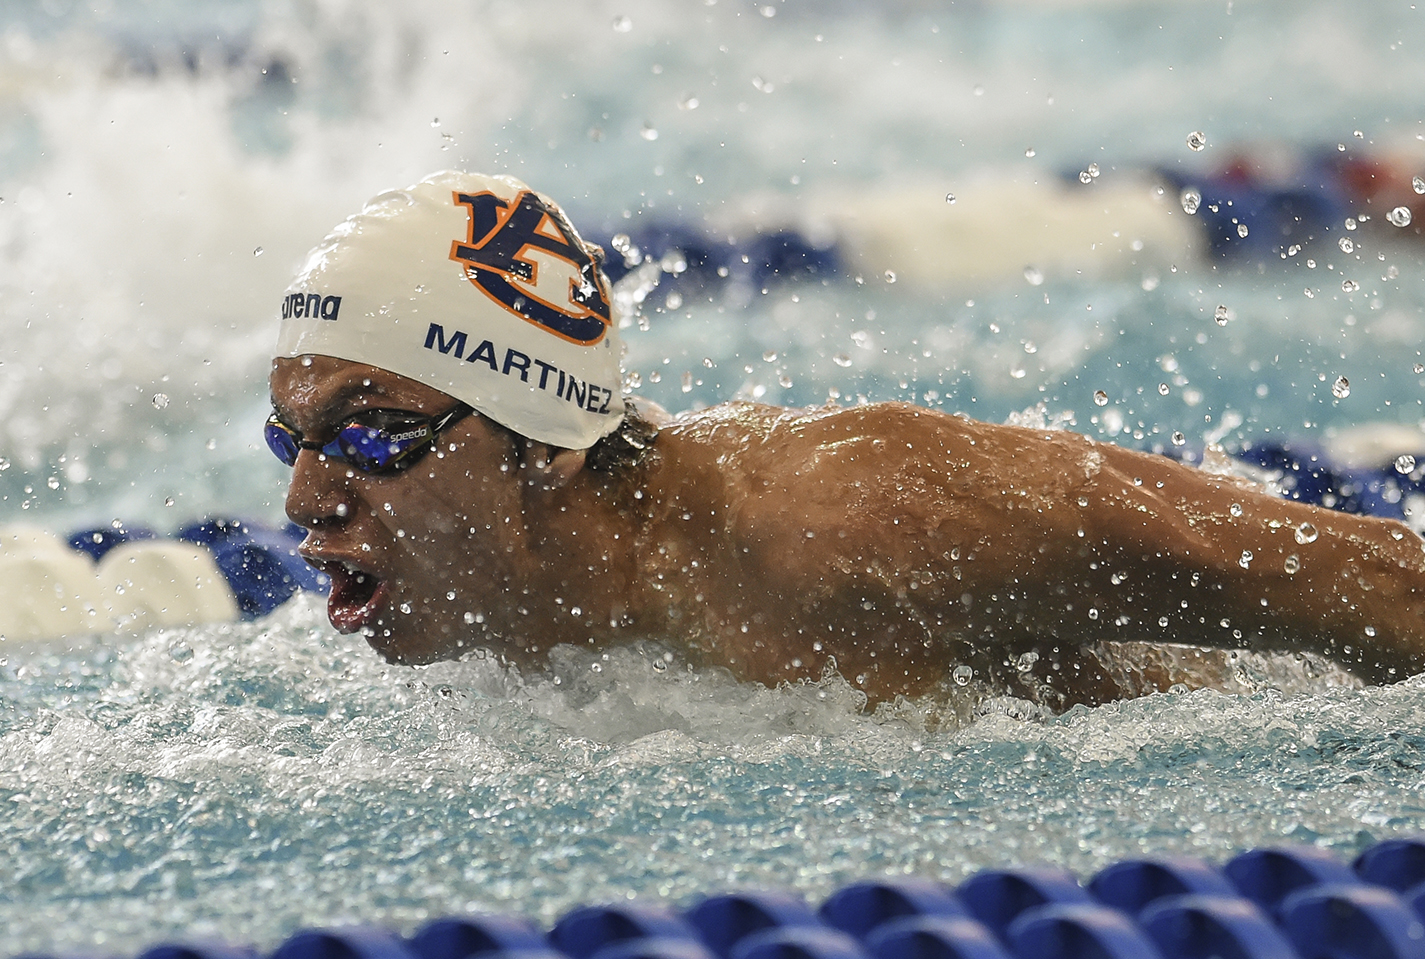 Luis Martinez Auburn during the men's NCAA Swimming and Diving Championships on Friday, March 25, 2016 in Atlanta, Ga. Photo by Wade Rackley/Auburn Athletics